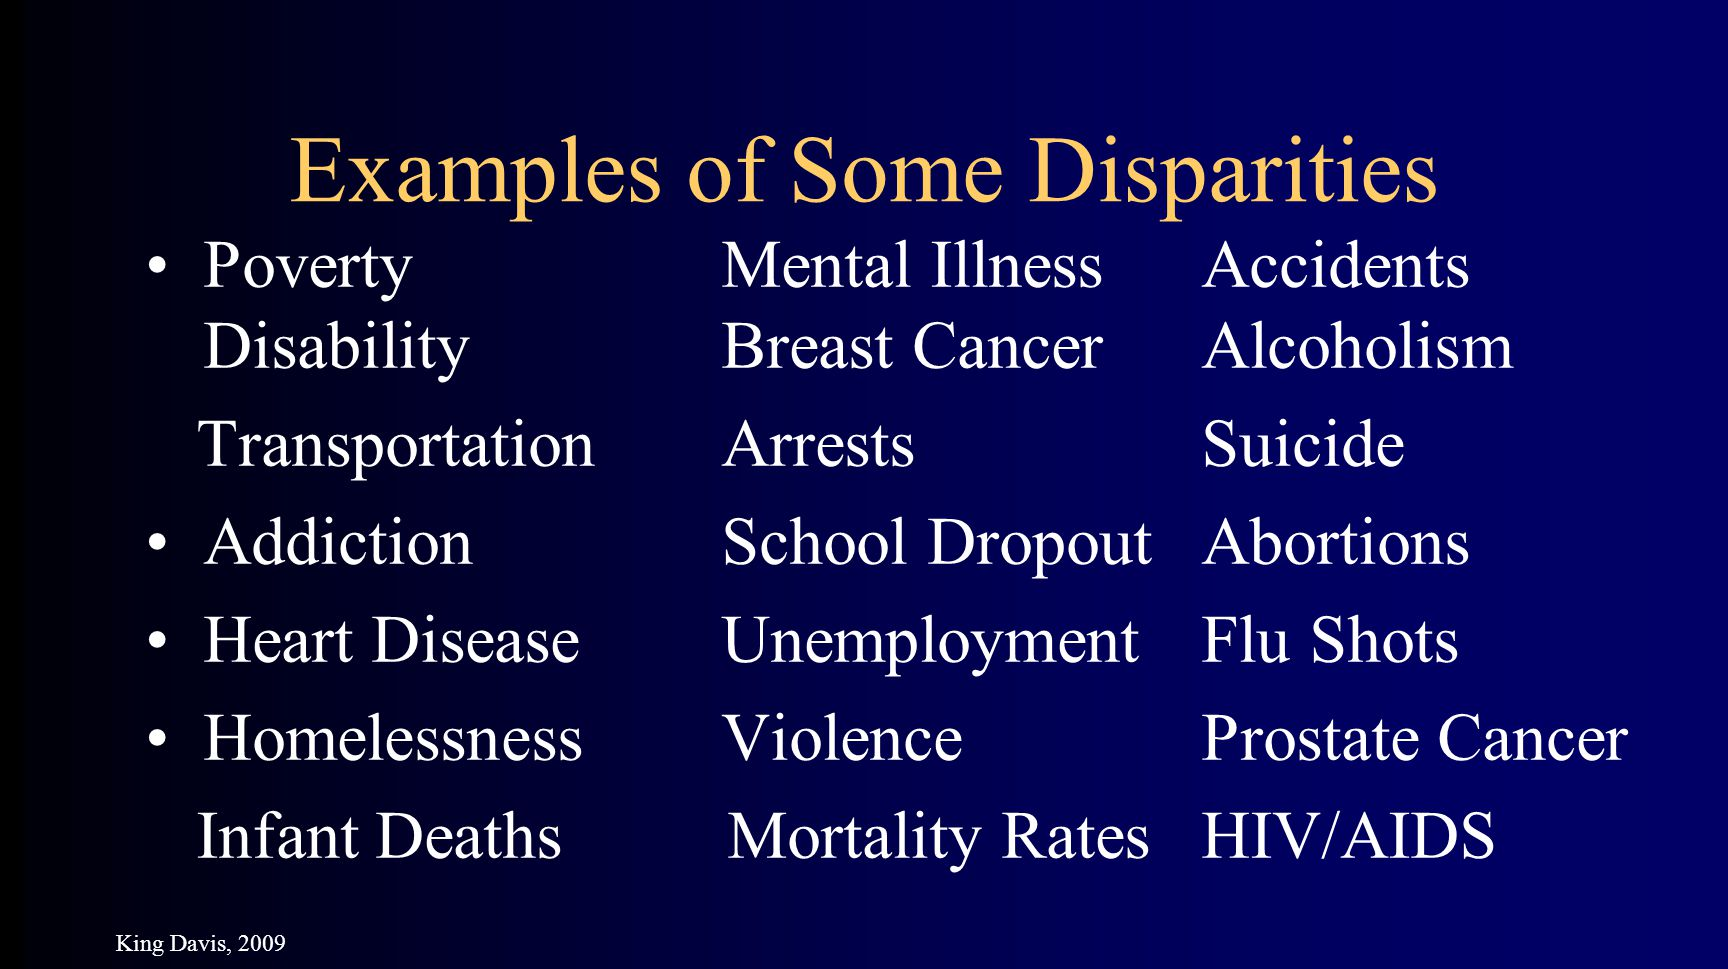 Examples of Some Disparities PovertyMental IllnessAccidents DisabilityBreast CancerAlcoholism TransportationArrestsSuicide AddictionSchool DropoutAbortions Heart DiseaseUnemploymentFlu Shots HomelessnessViolenceProstate Cancer Infant Deaths Mortality RatesHIV/AIDS King Davis, 2009